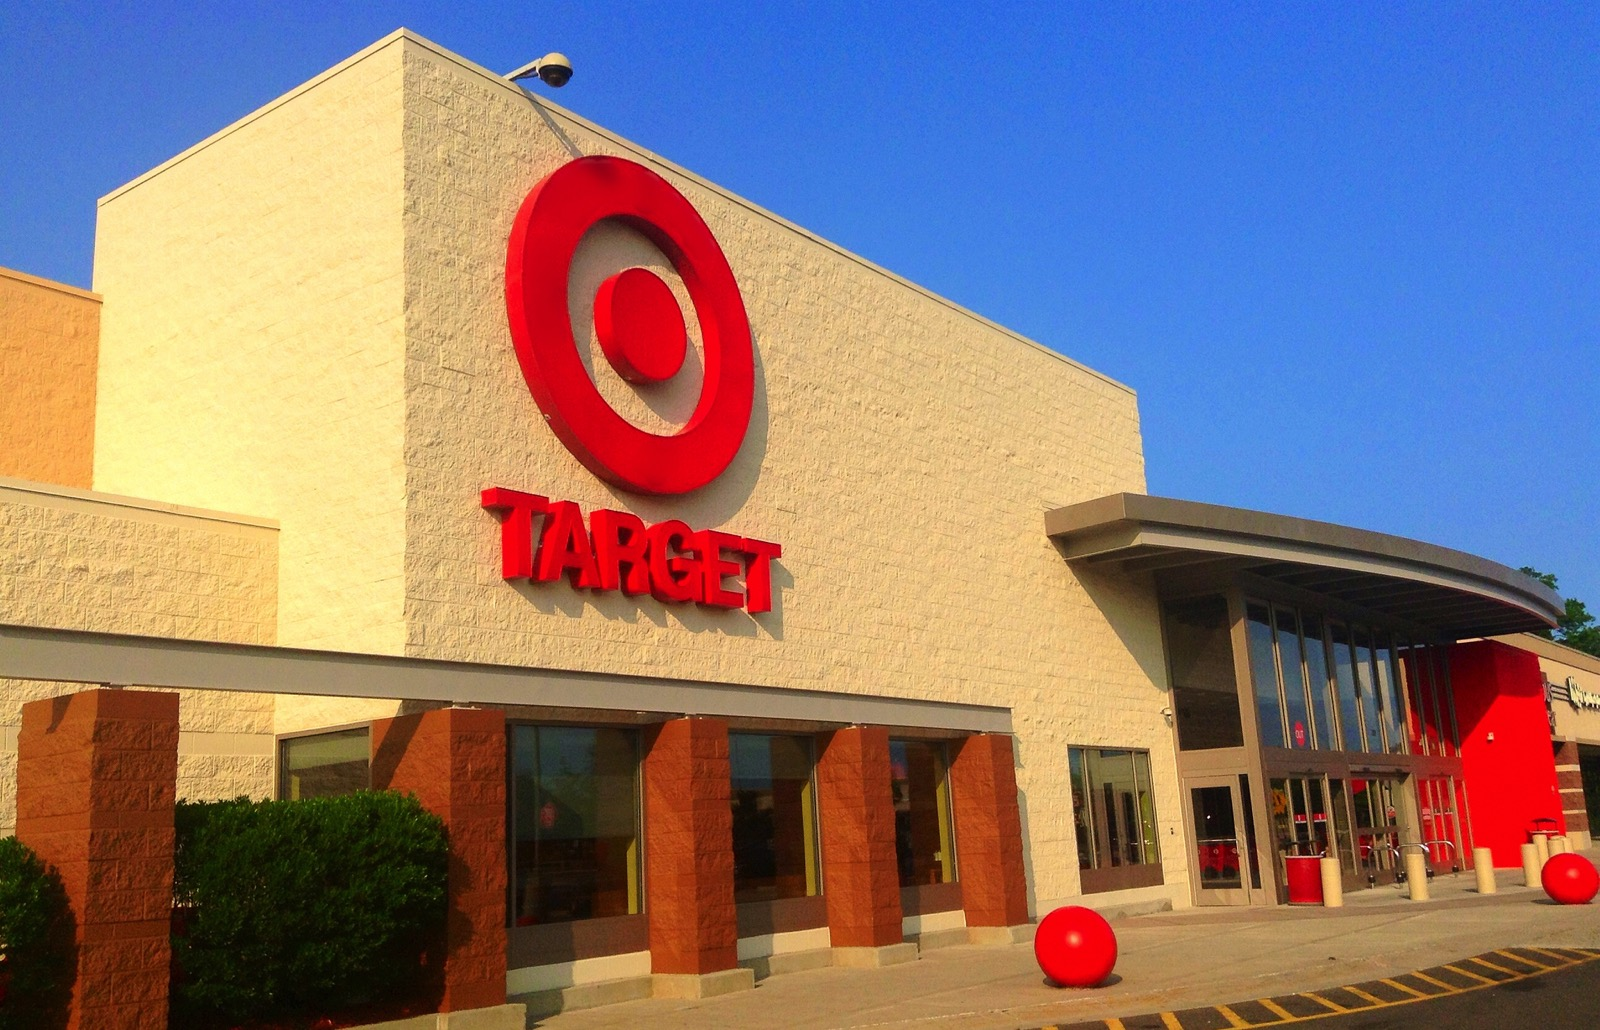 Target buys same-day delivery company to battle Amazon